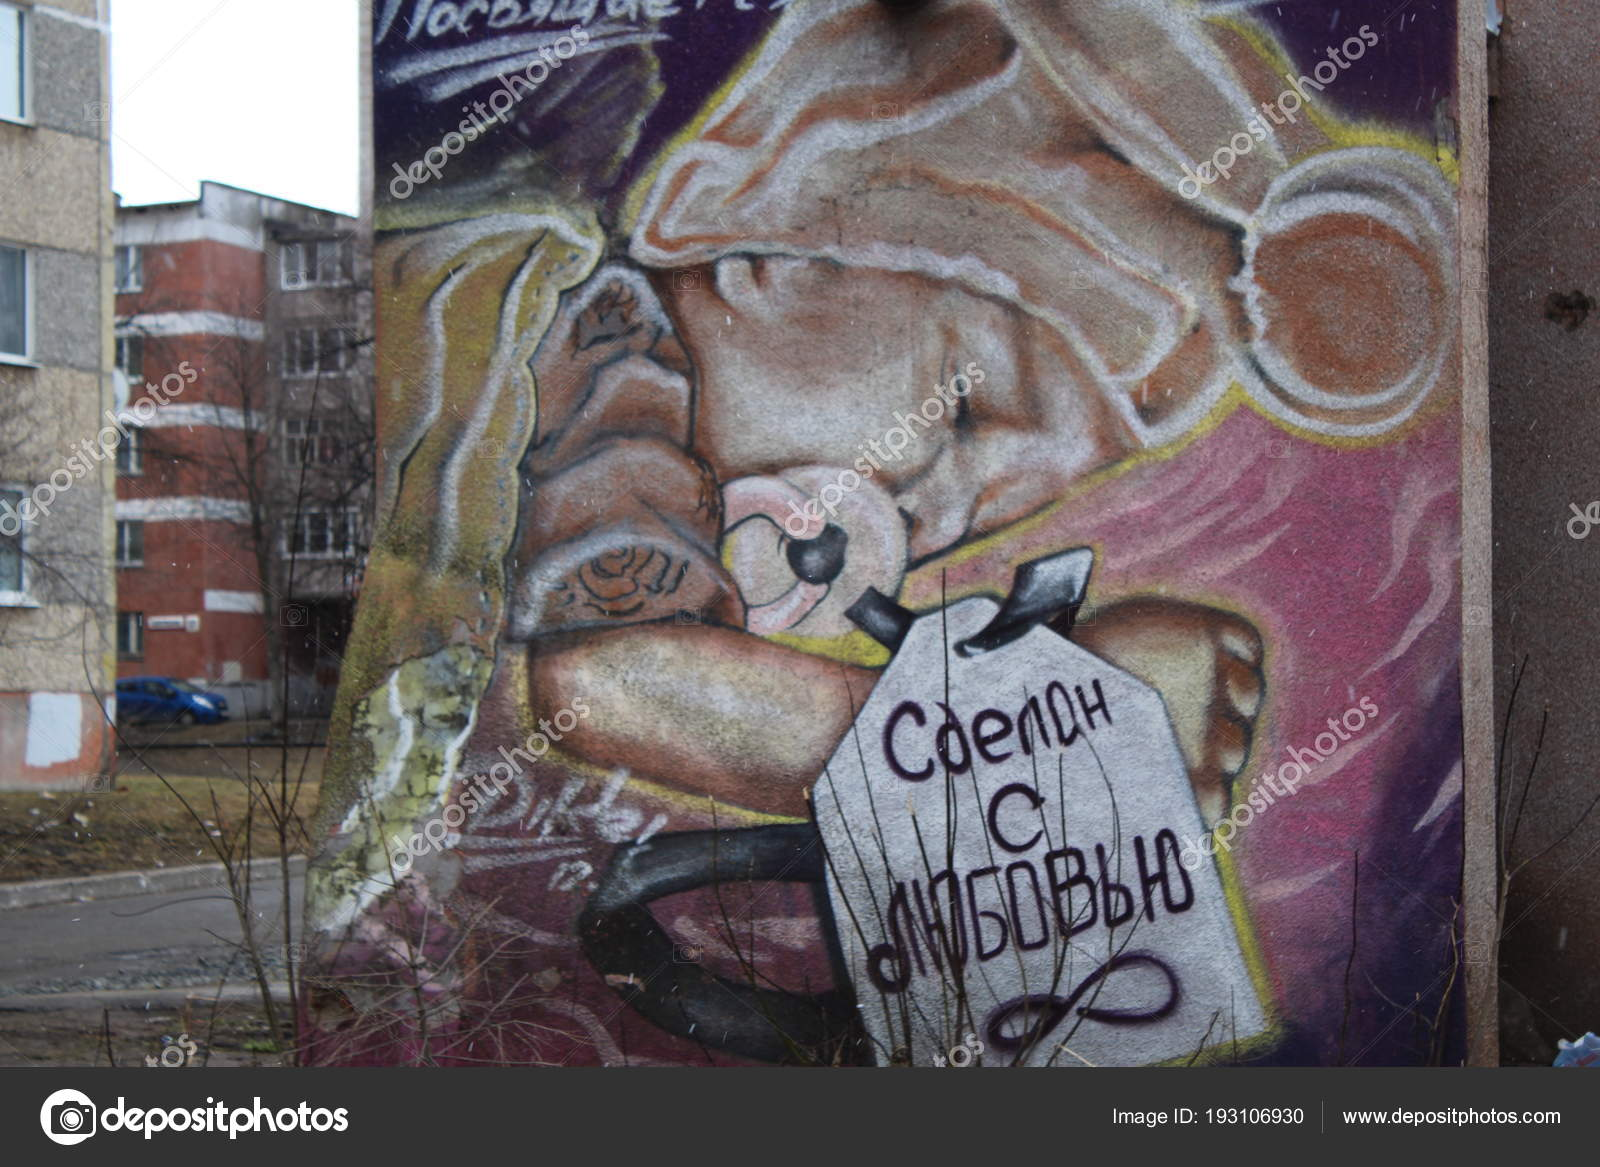 Cuadro Graffiti 23 De Abril De 2018 Izhevsk Rusia Graffiti En La Pared De La